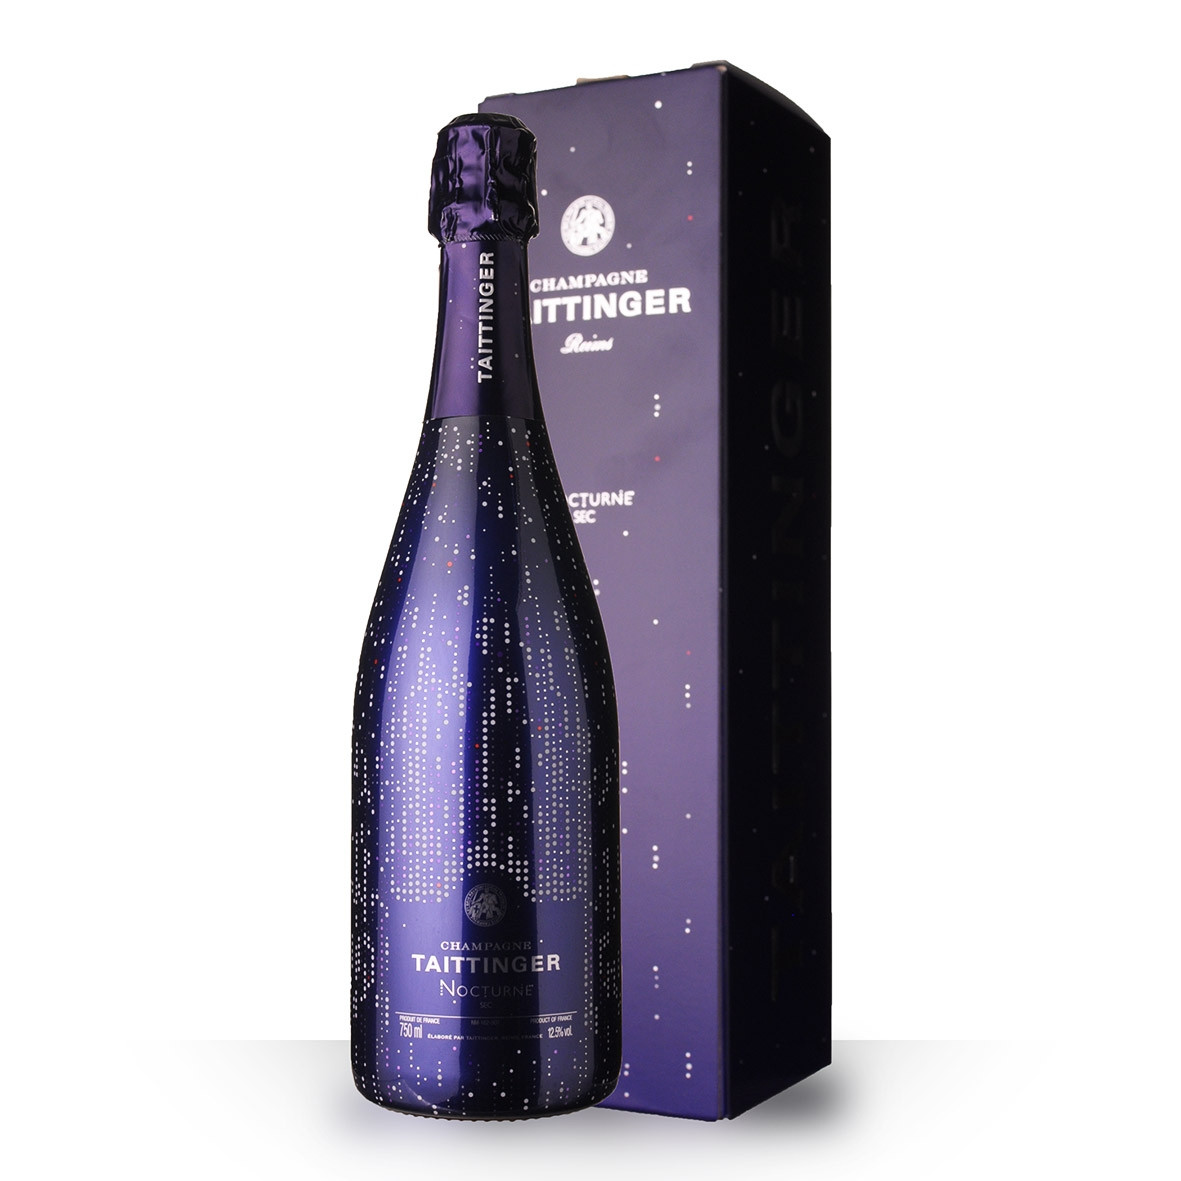 Champagne Taittinger Nocturne City Light 75cl Etui www.odyssee-vins.com